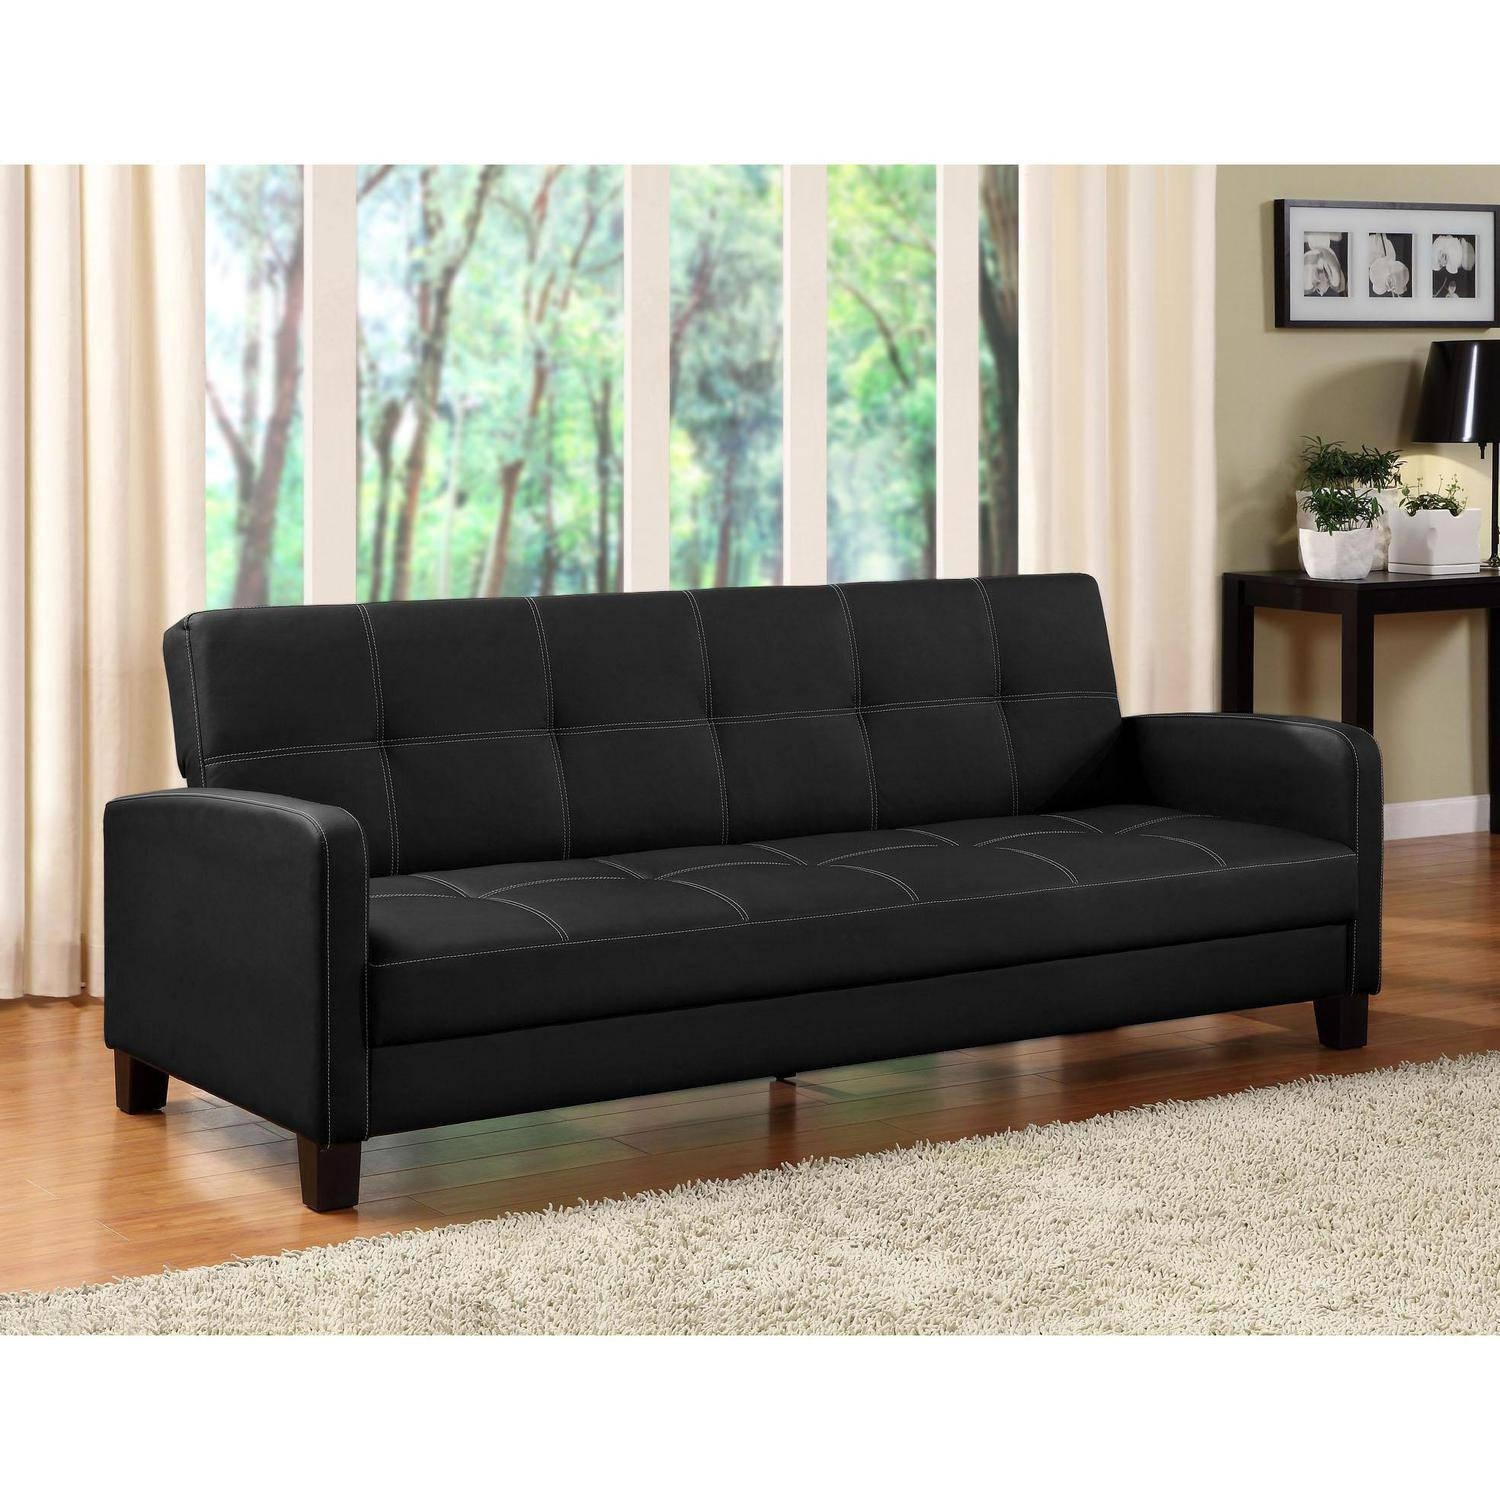 Sofas Center : Perfect Usedn Leather Sleeper Sofa For Sheets Queen Within Sears Sleeper Sofas (View 2 of 20)